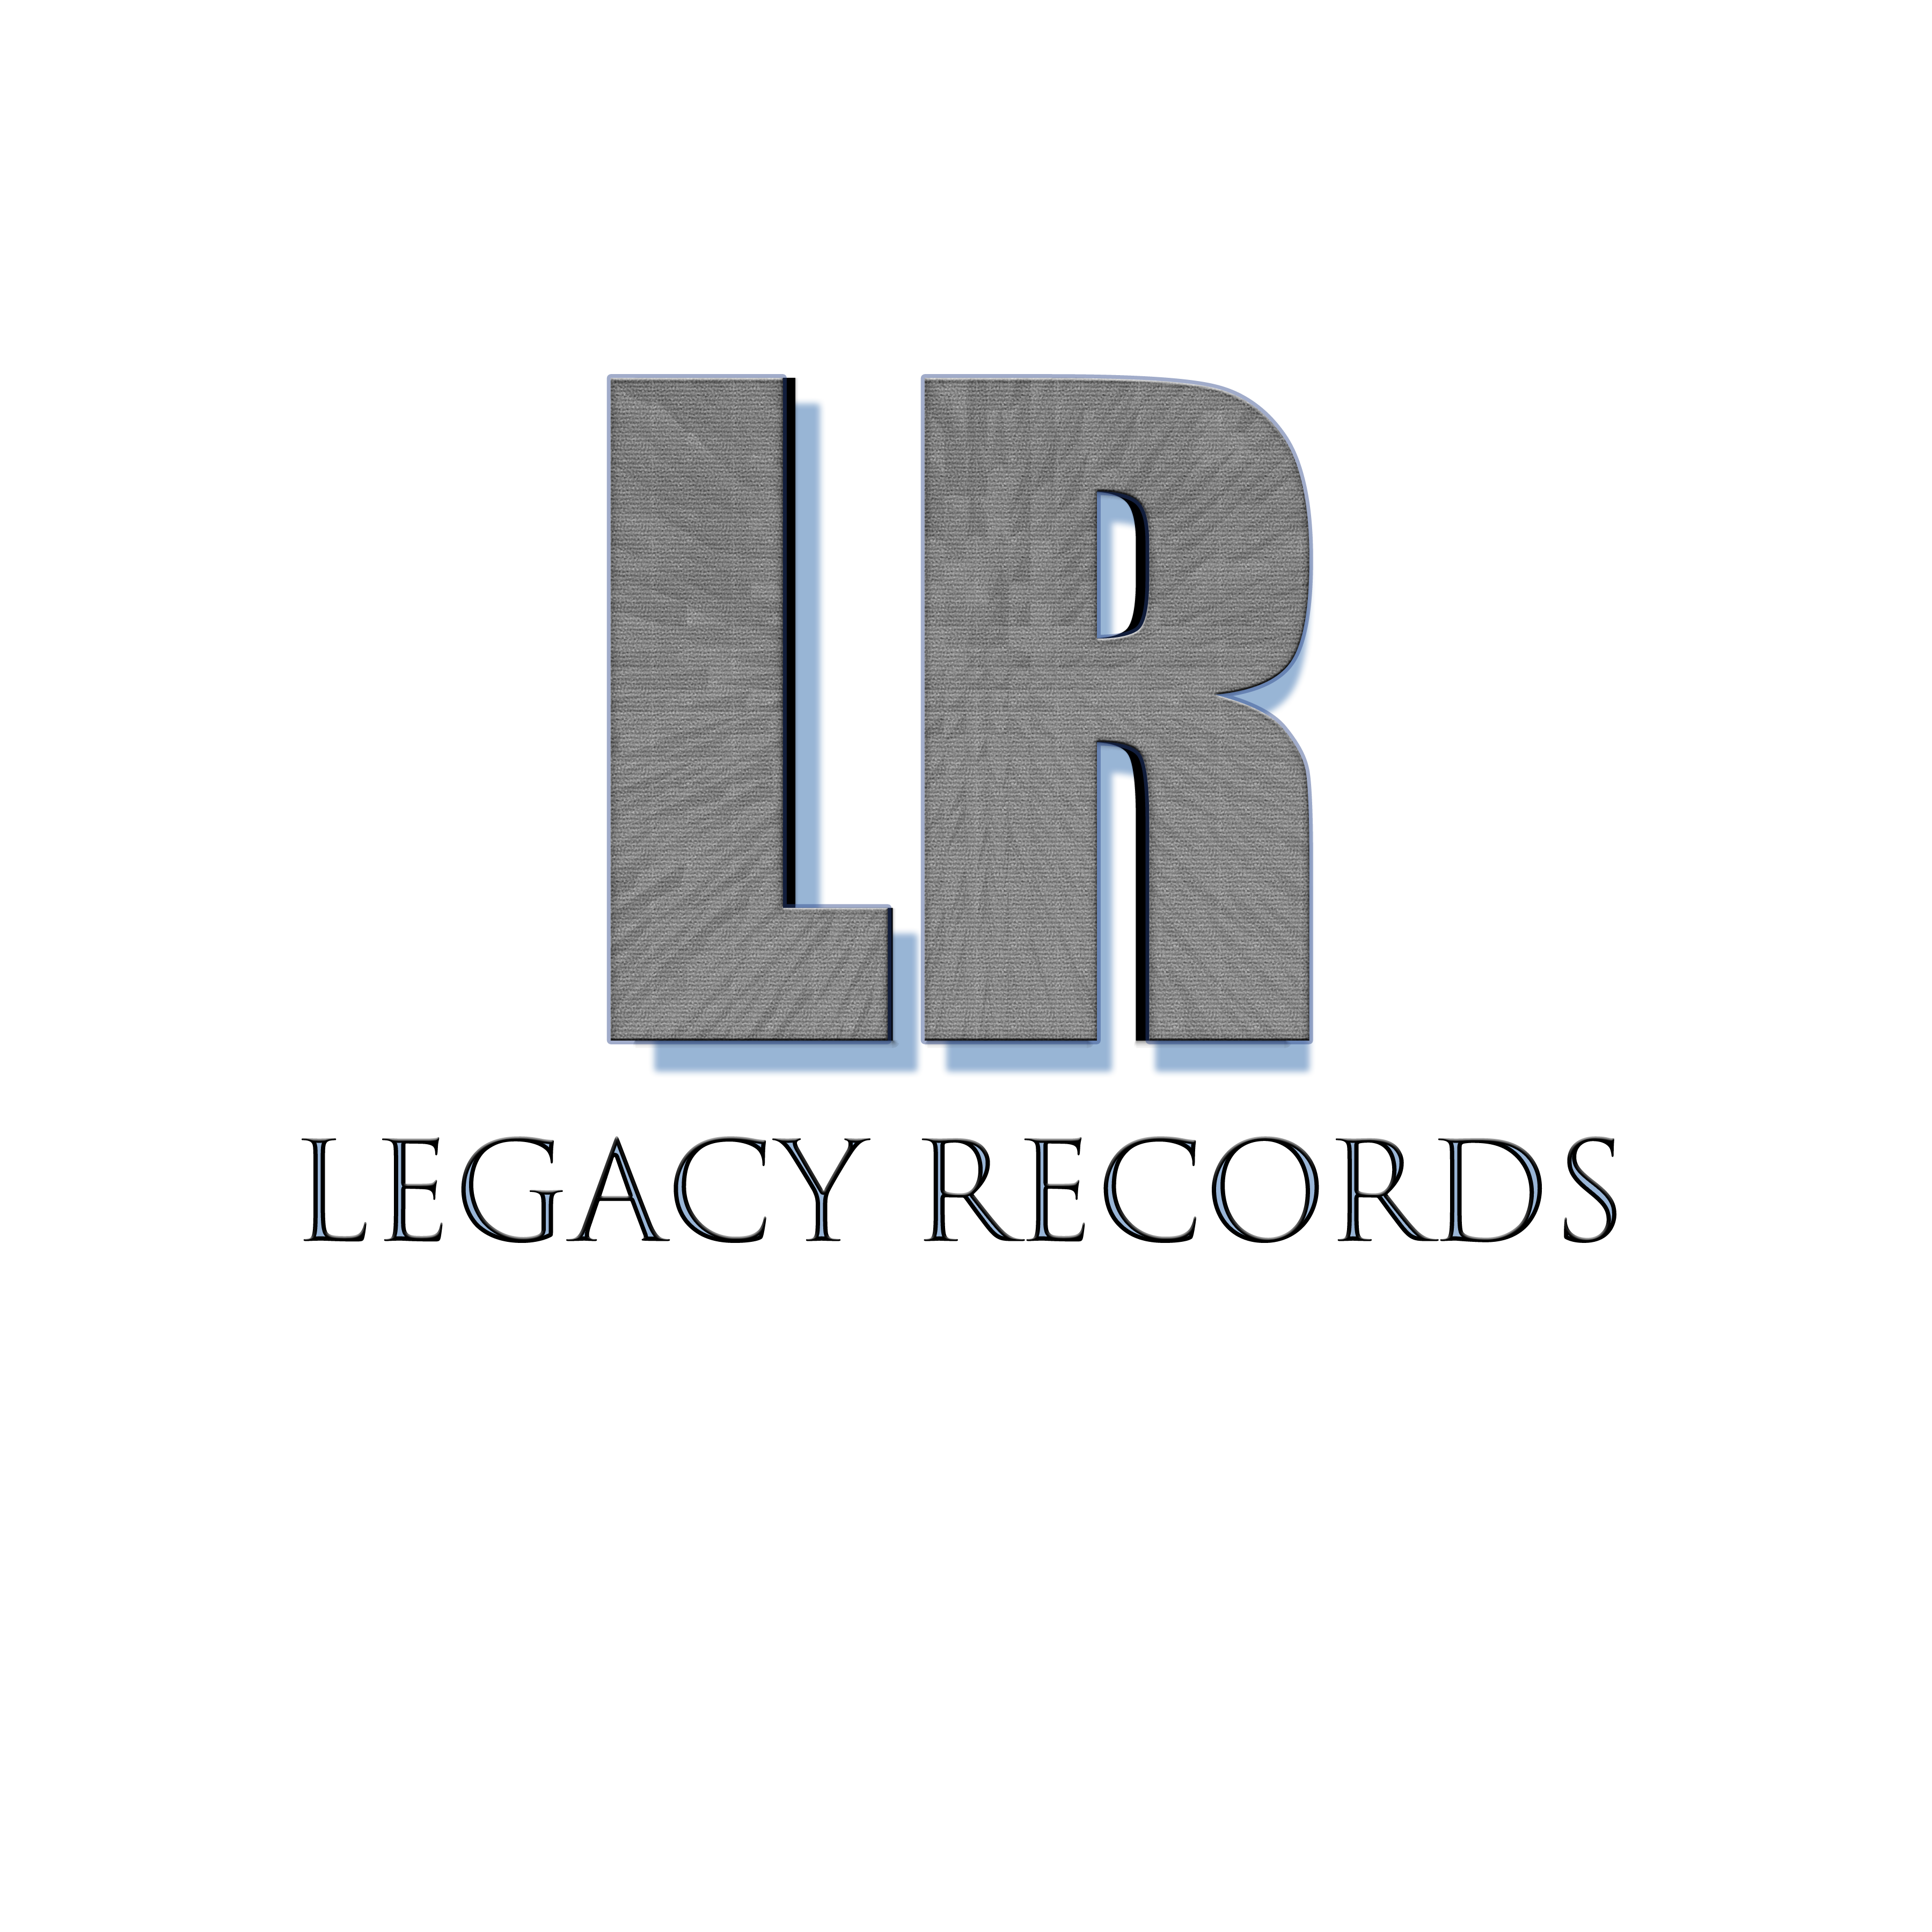 Legacy Records Llc